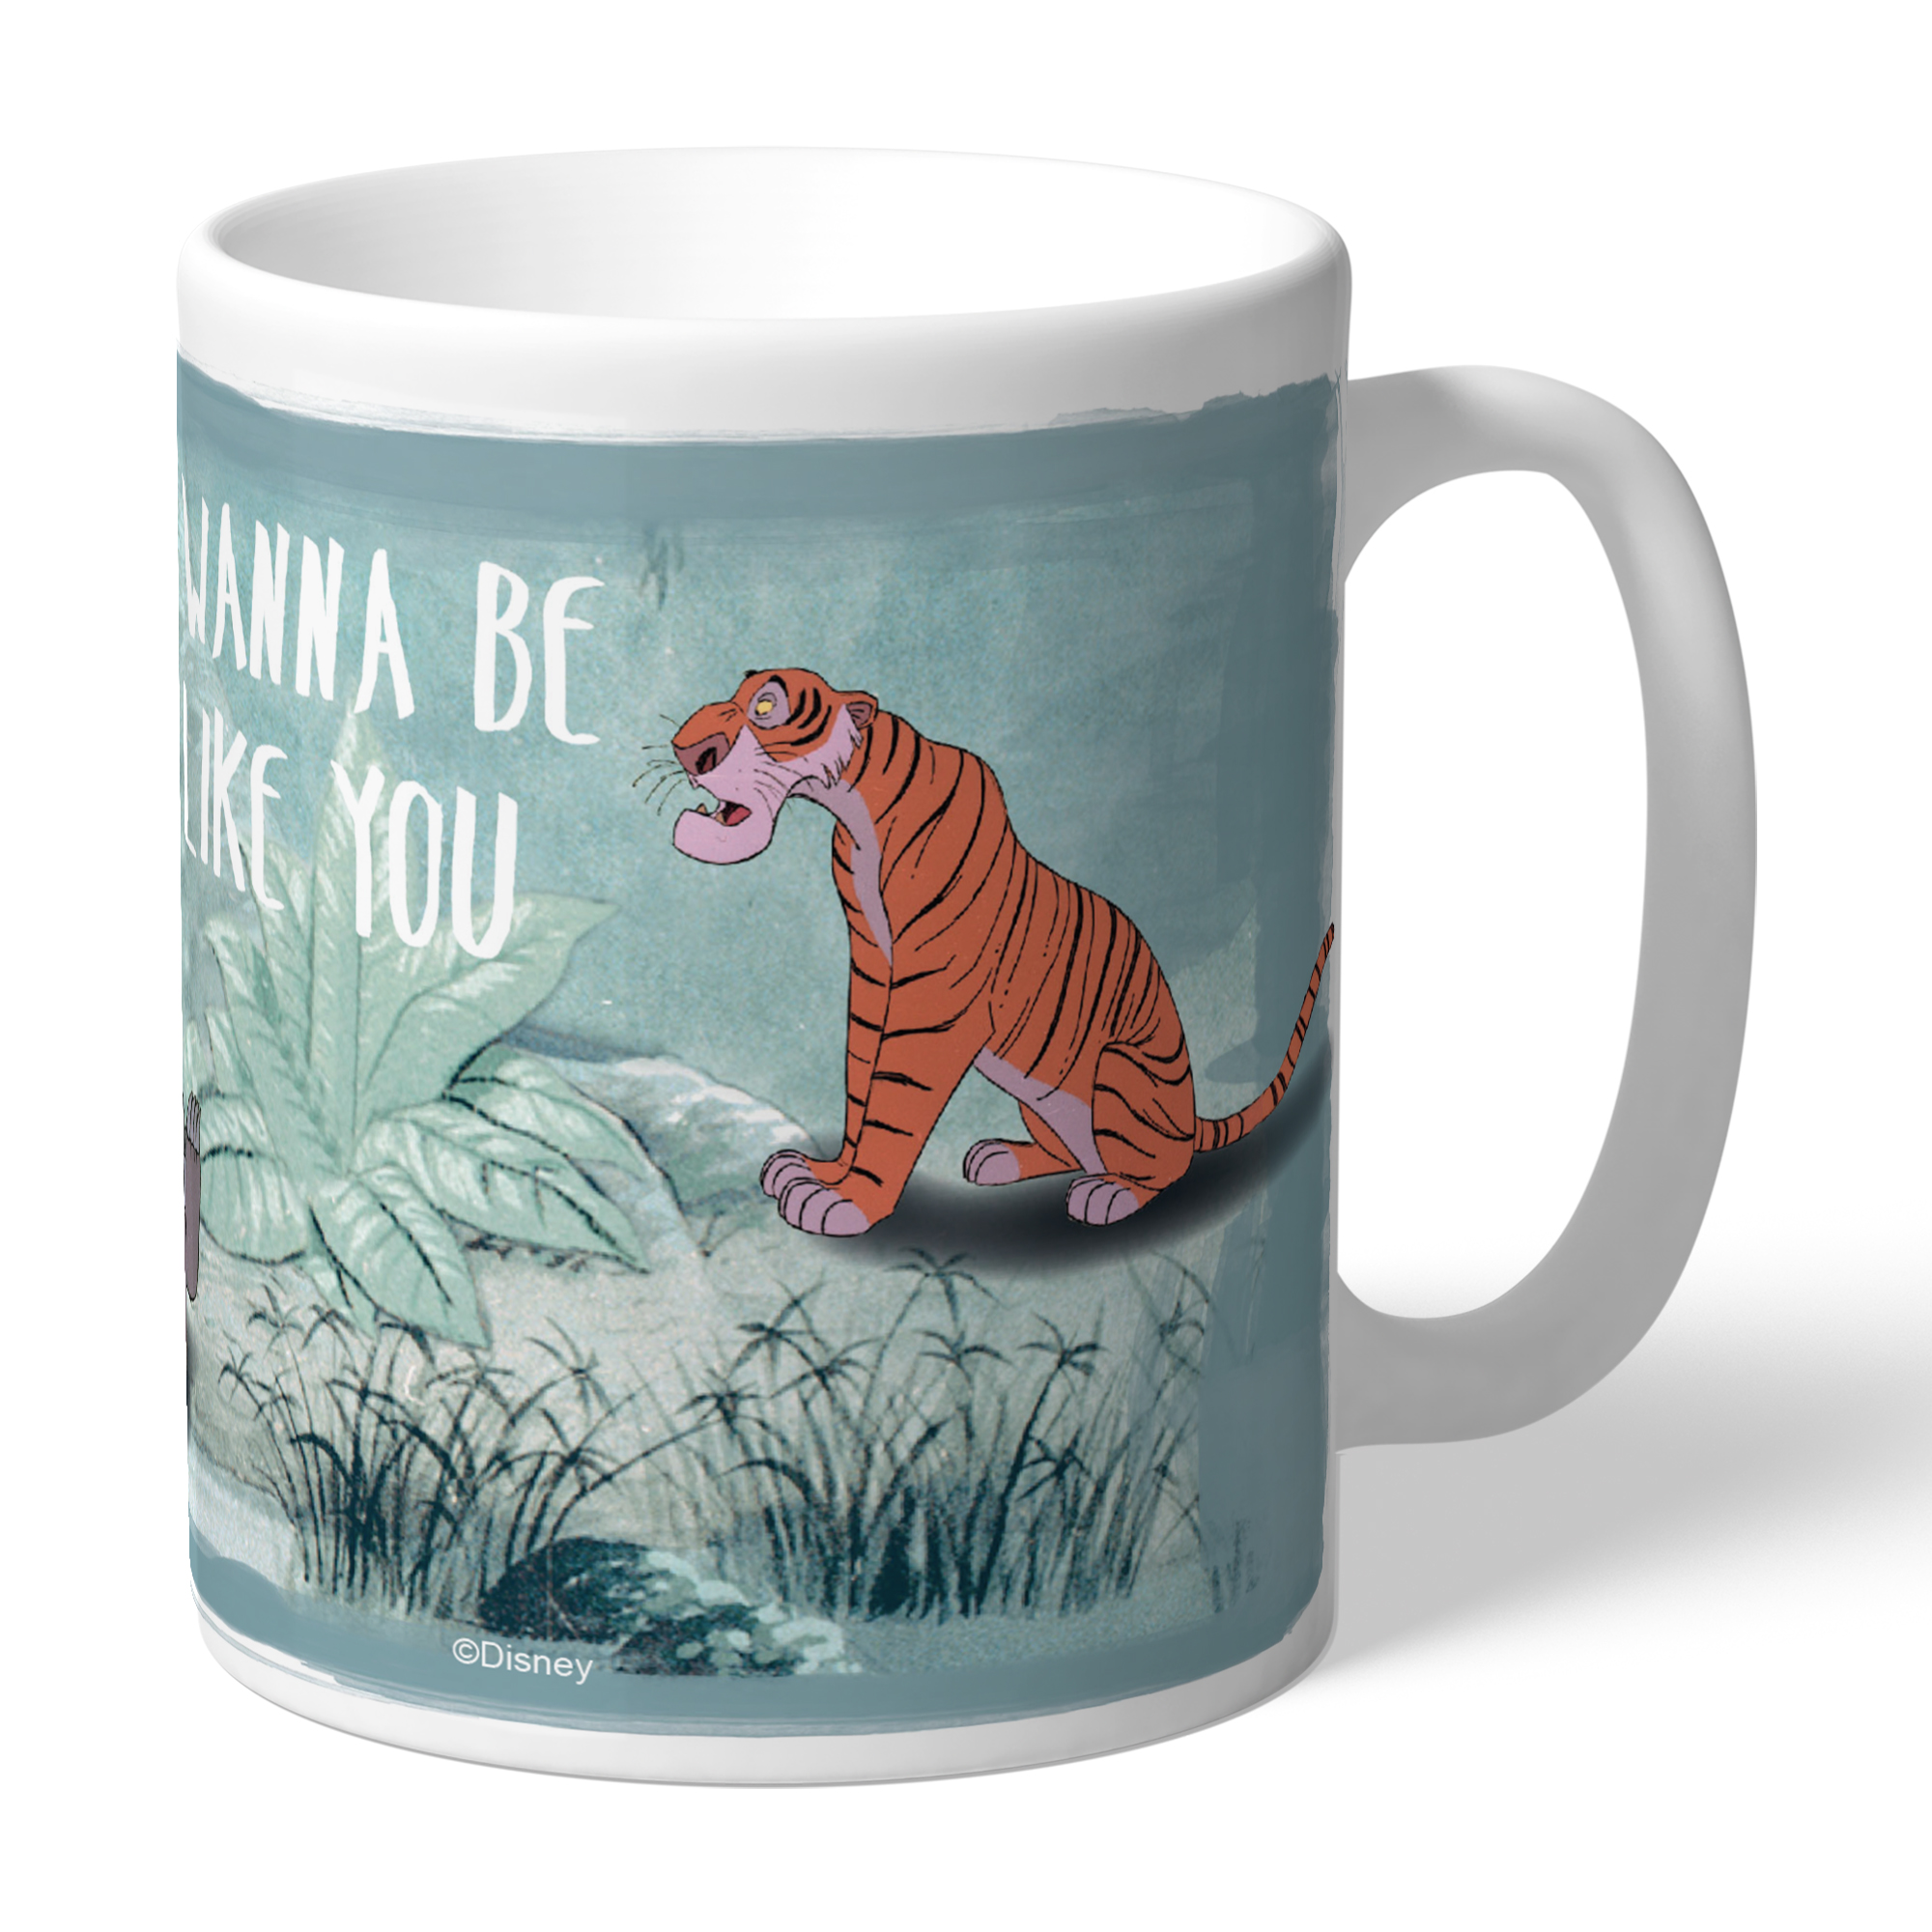 Disney The Jungle Book 'I Wanna Be Like You' Mug